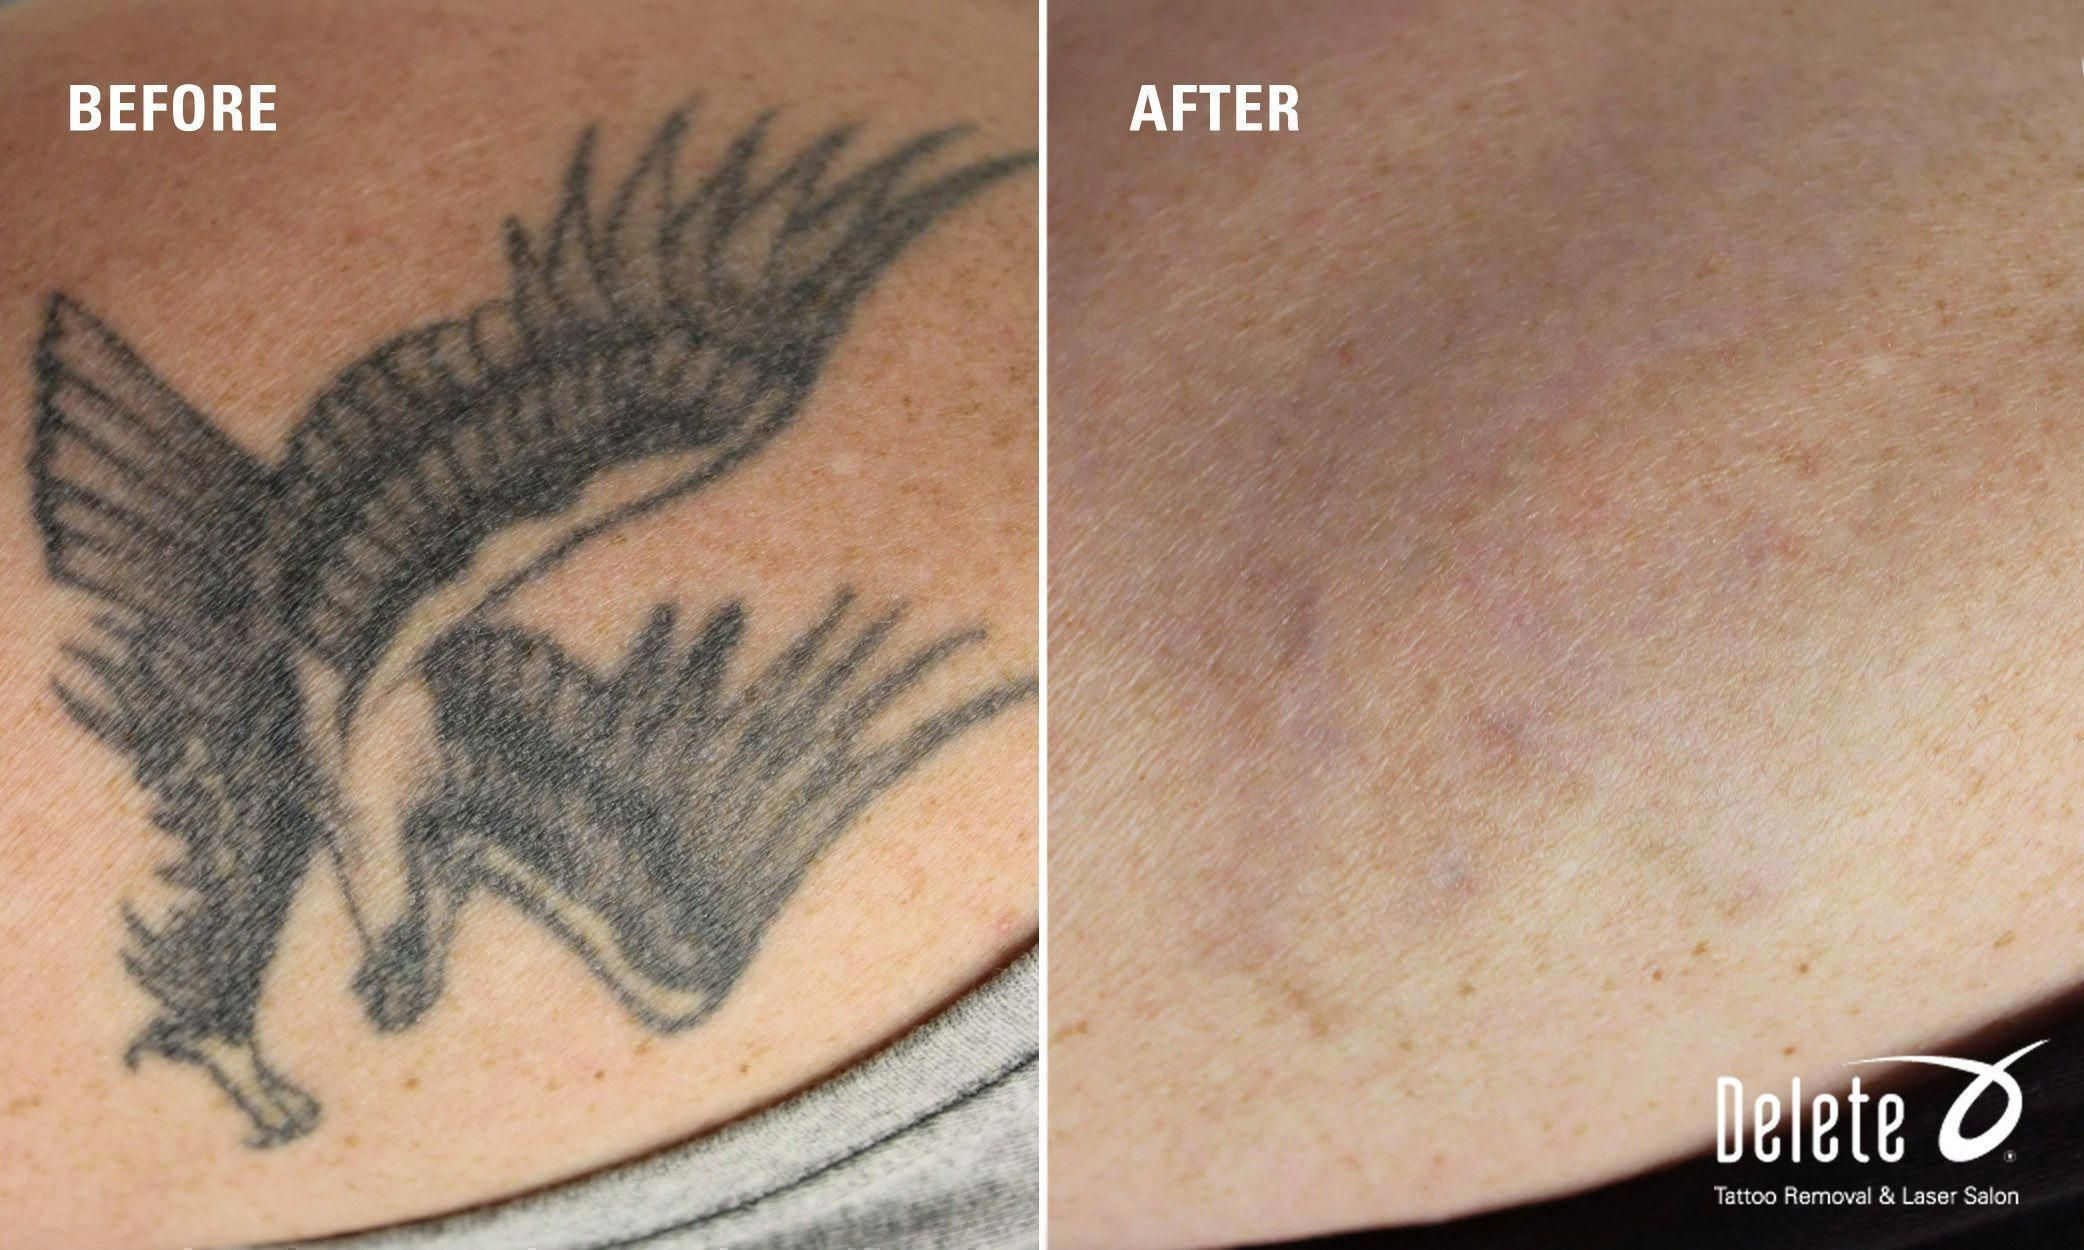 Weekend Is Over Time For Monday S Before After Tattoo Removal At Delete Tattoo Removal And Laser Salon Tattoo Removal Cost Tattoo Removal Laser Tattoo